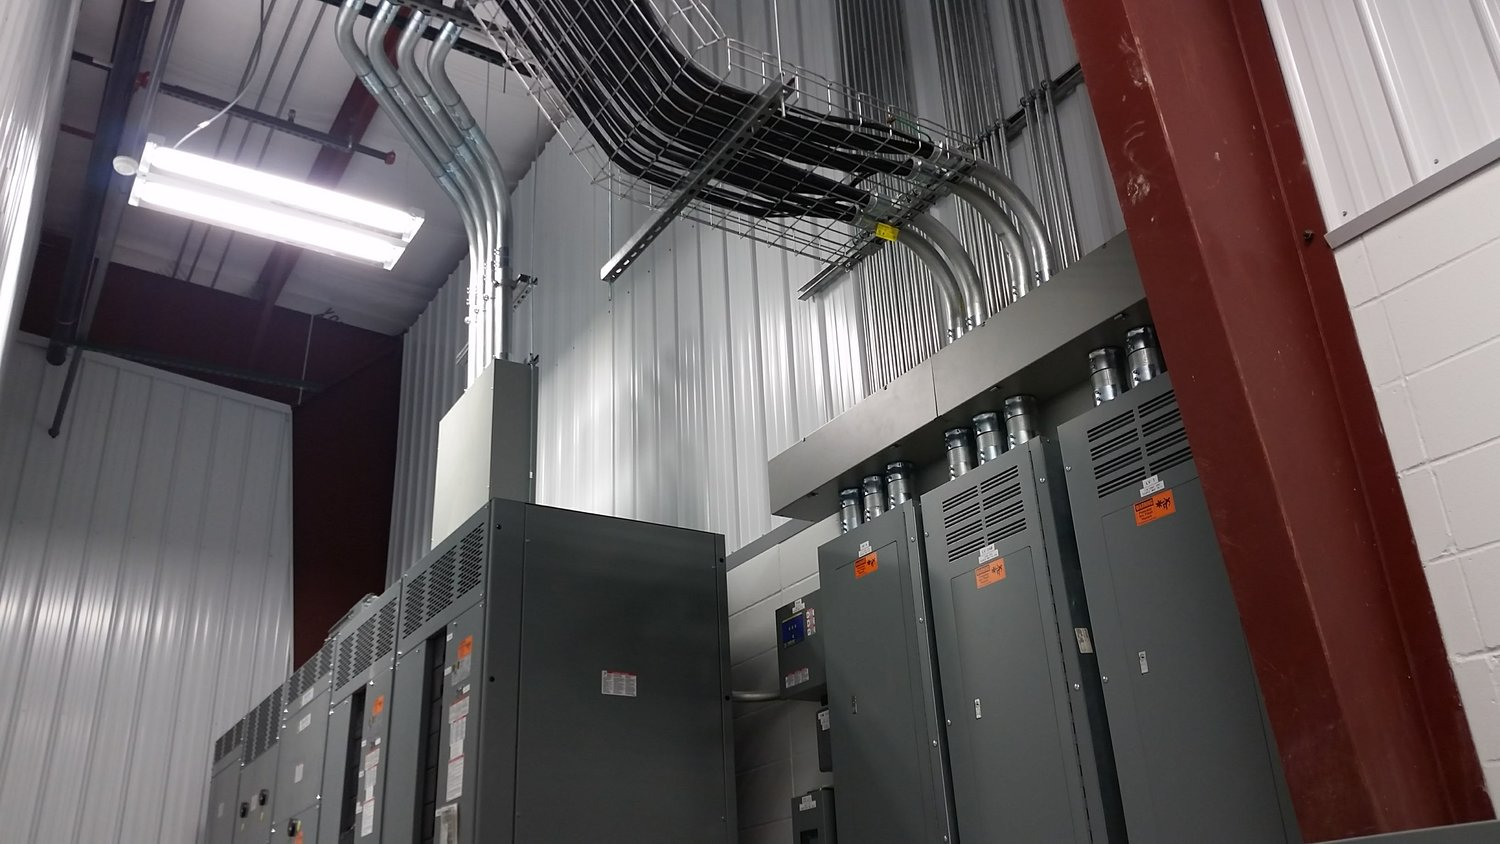 Electrical Services Witzke Electric Residential Wiring Service About Us Contact 20161025 122713